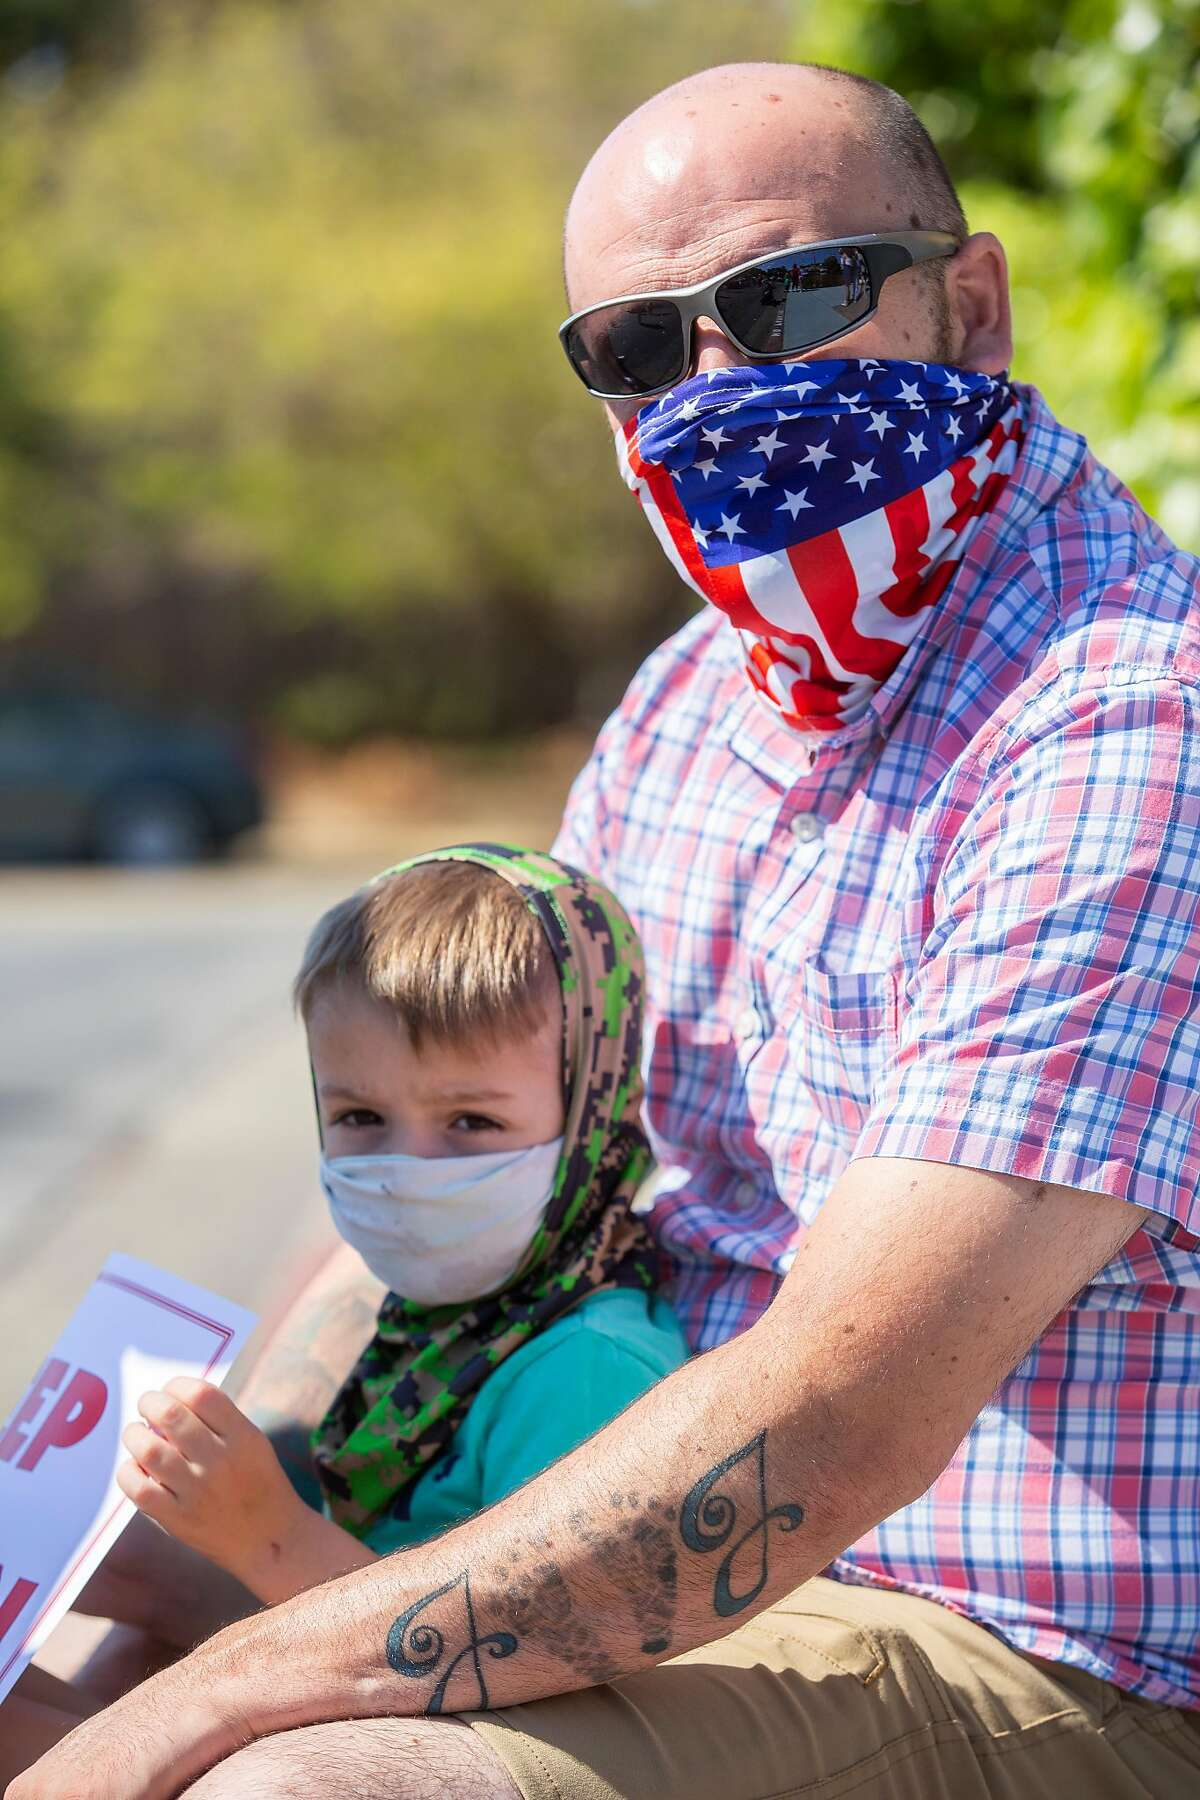 Joe Pelleriti and his son Joe Pelleriti Jr., 3, at a rally outside the Marin County Office of Education on Thursday, July 16, 2020, in San Rafael, Calif. Teachers and their supporters across California are protesting school district plans for in-person learning, amid the coronavirus pandemic. Pelleriti�s spouse Tricia Pelleriti was laid off from her third grade teaching job.